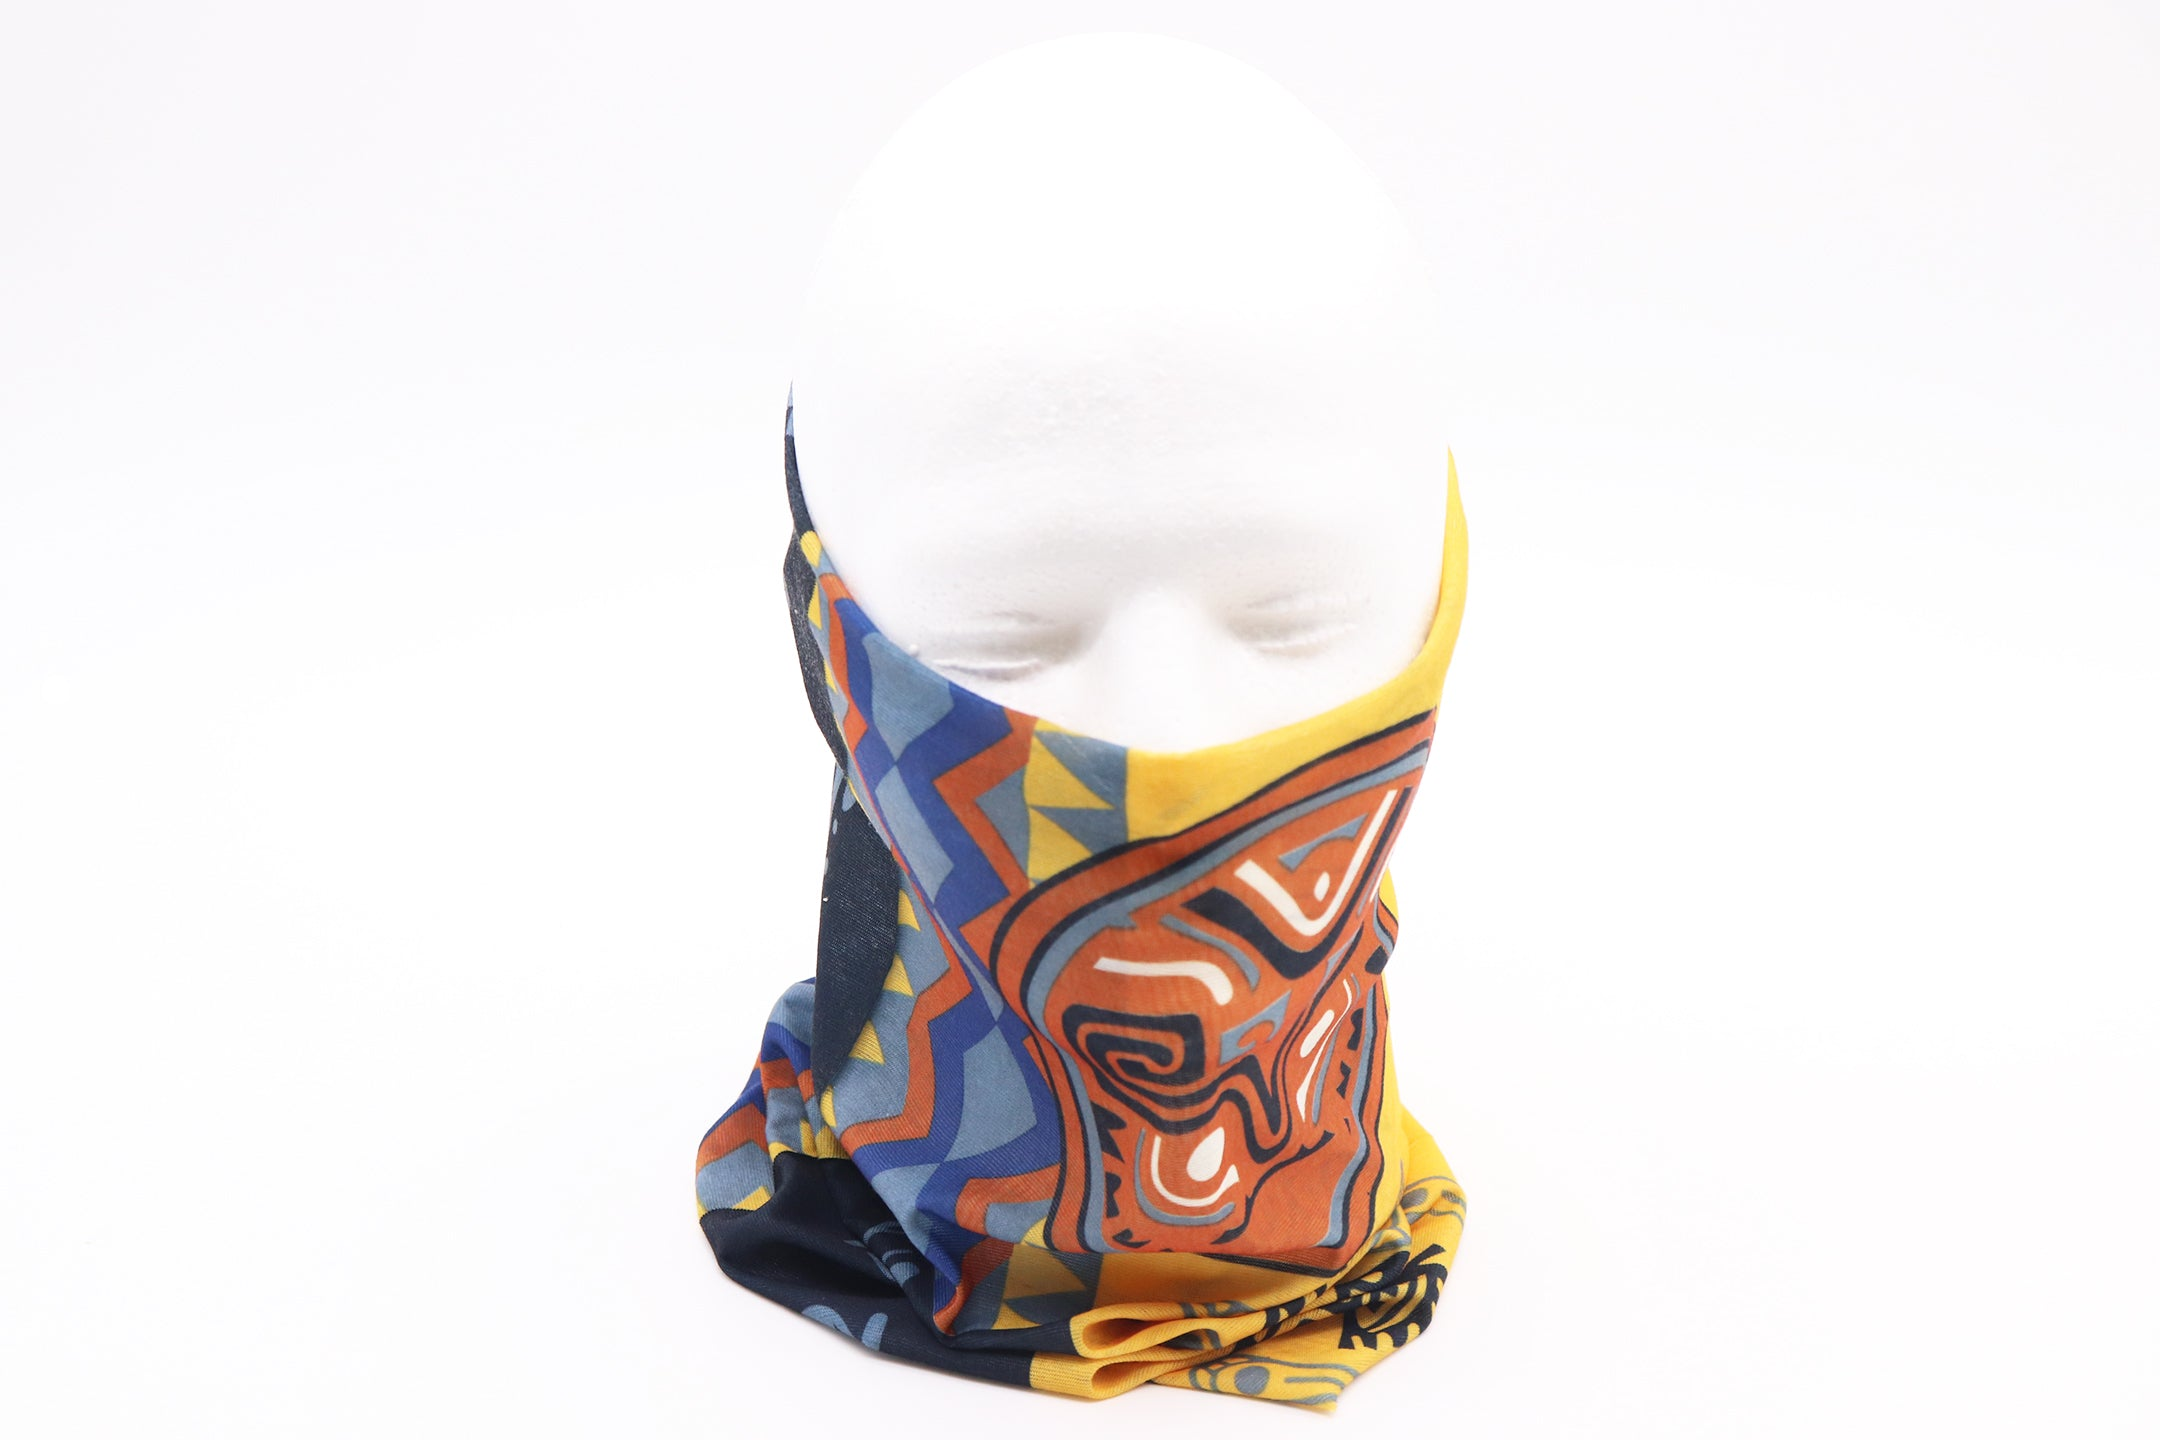 Gaiter native tribal pattern cool warm earth colors and figures. Headscarf sleeve head wear, neck, mouth, face mask protection. Native tribal design Sold by SDTrading Co.